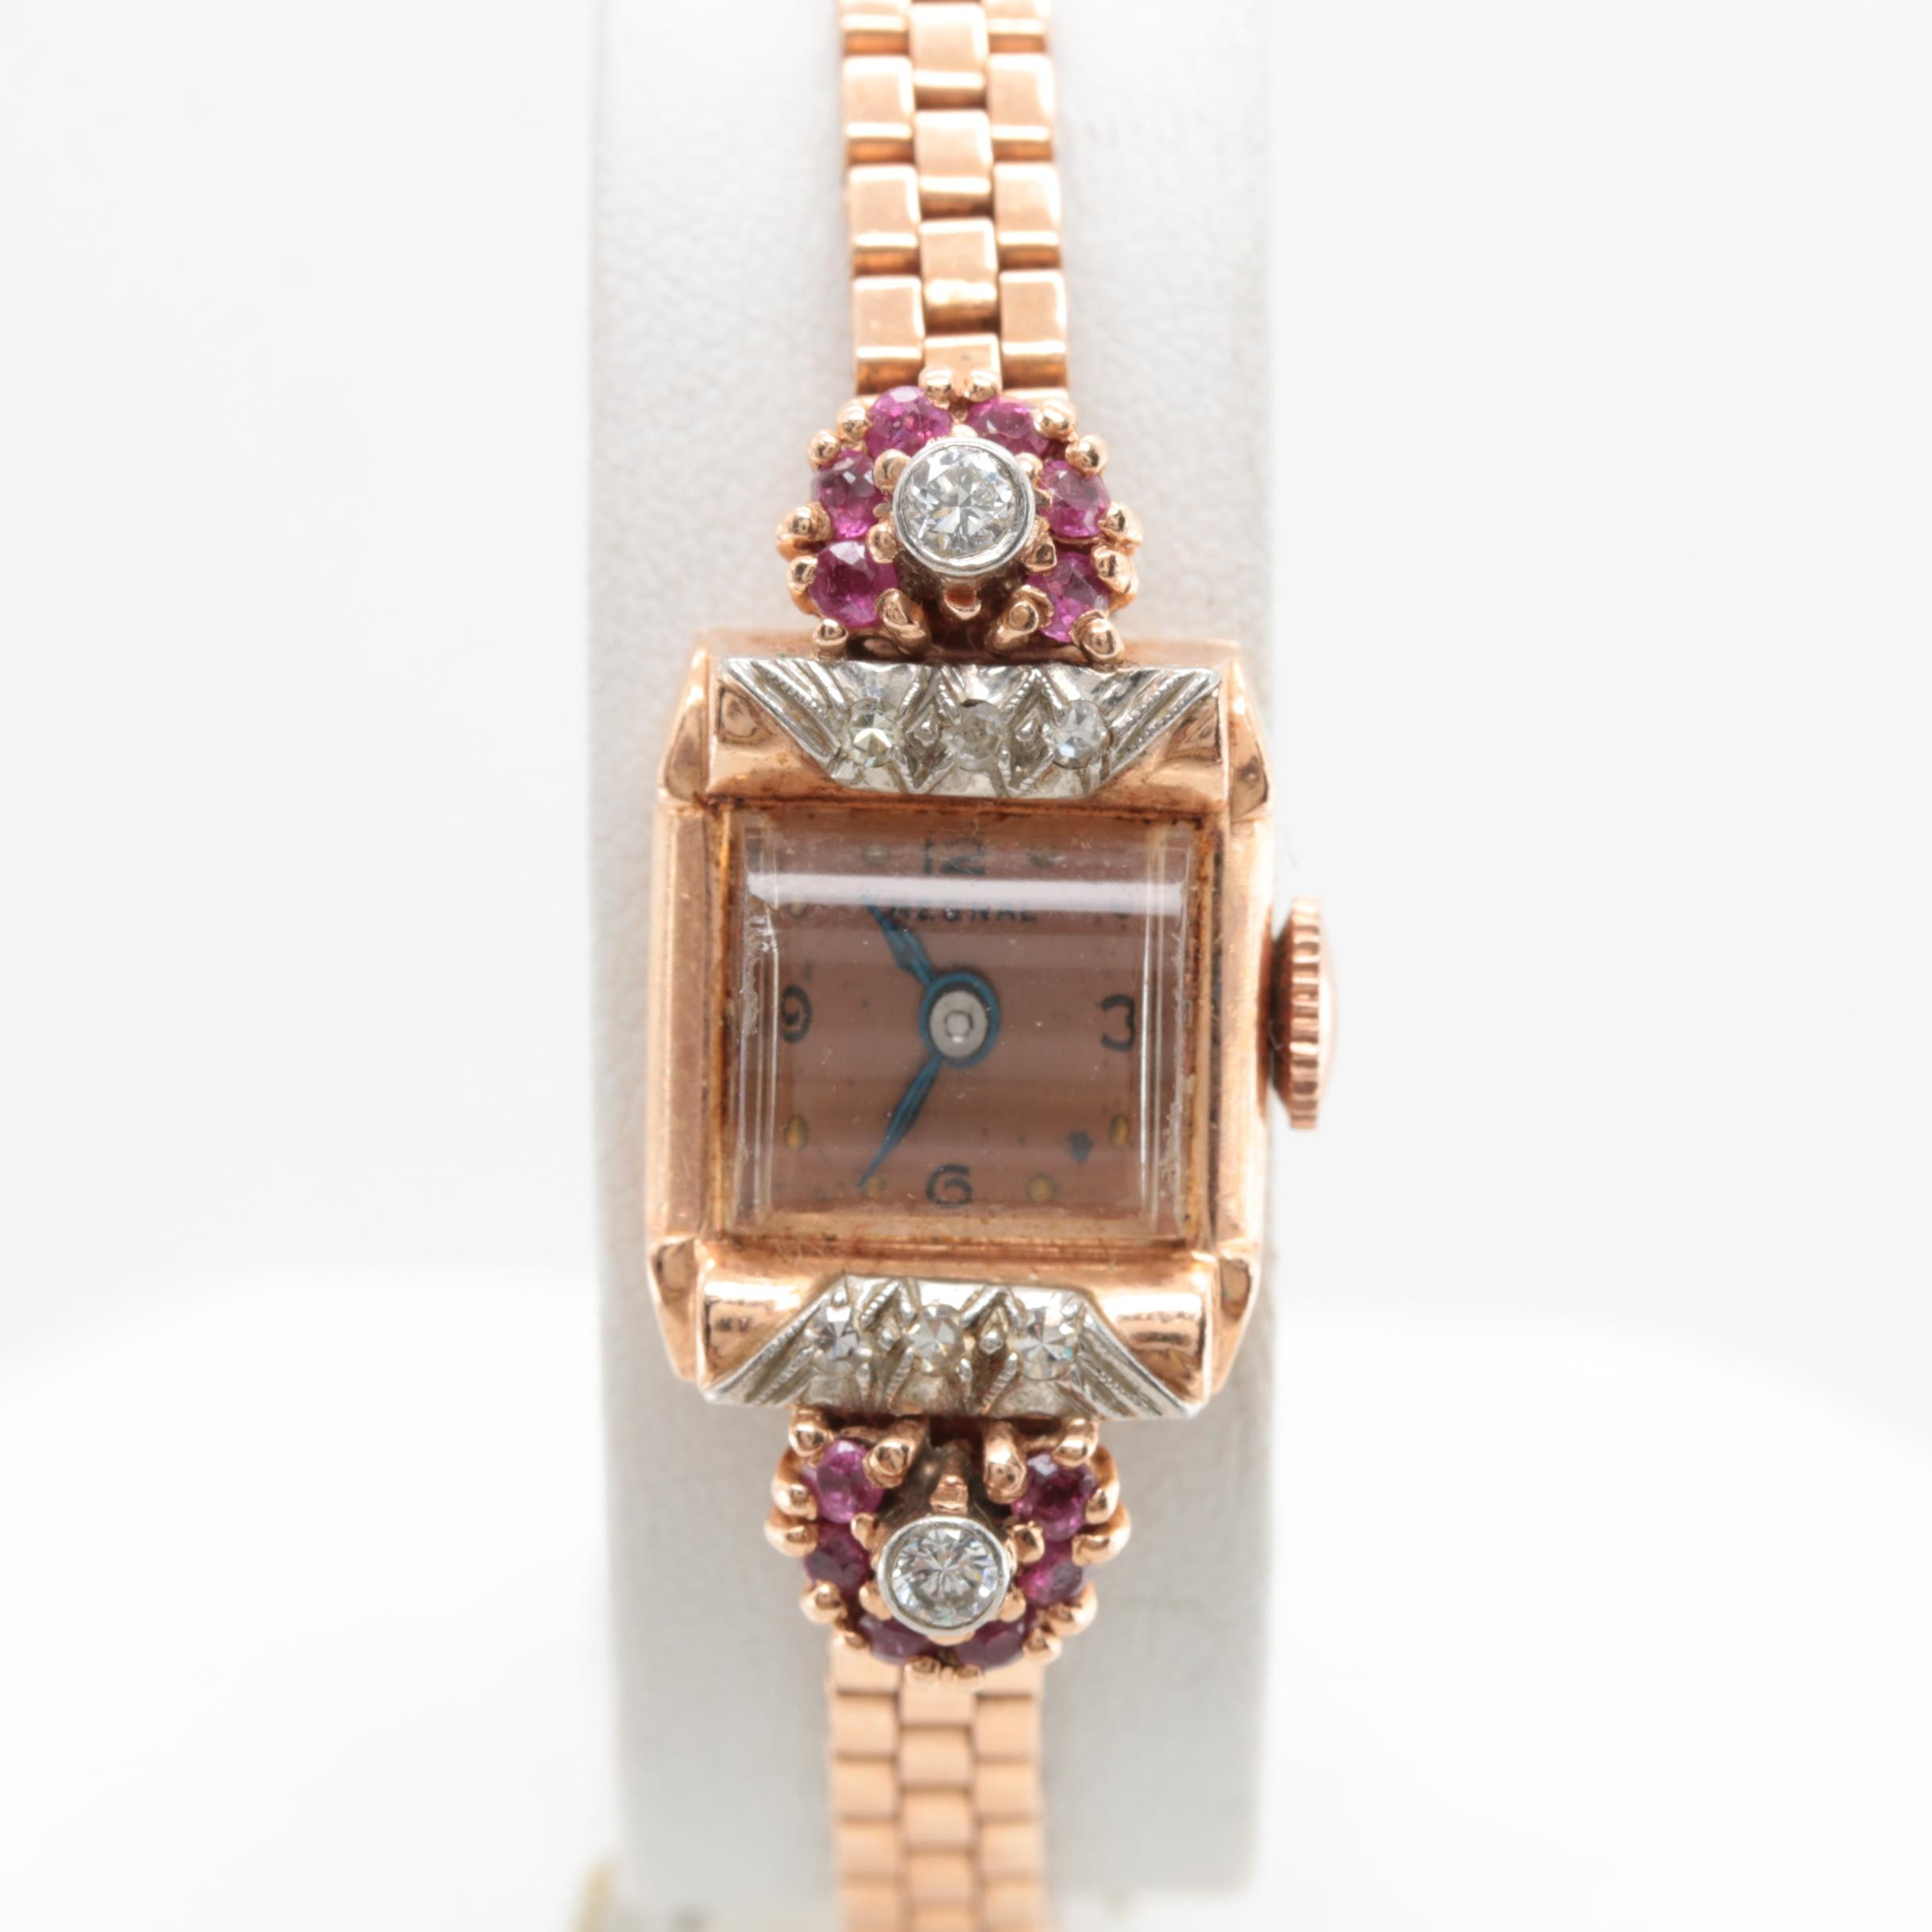 Regal 14K Rose Gold Diamond and Ruby Wristwatch